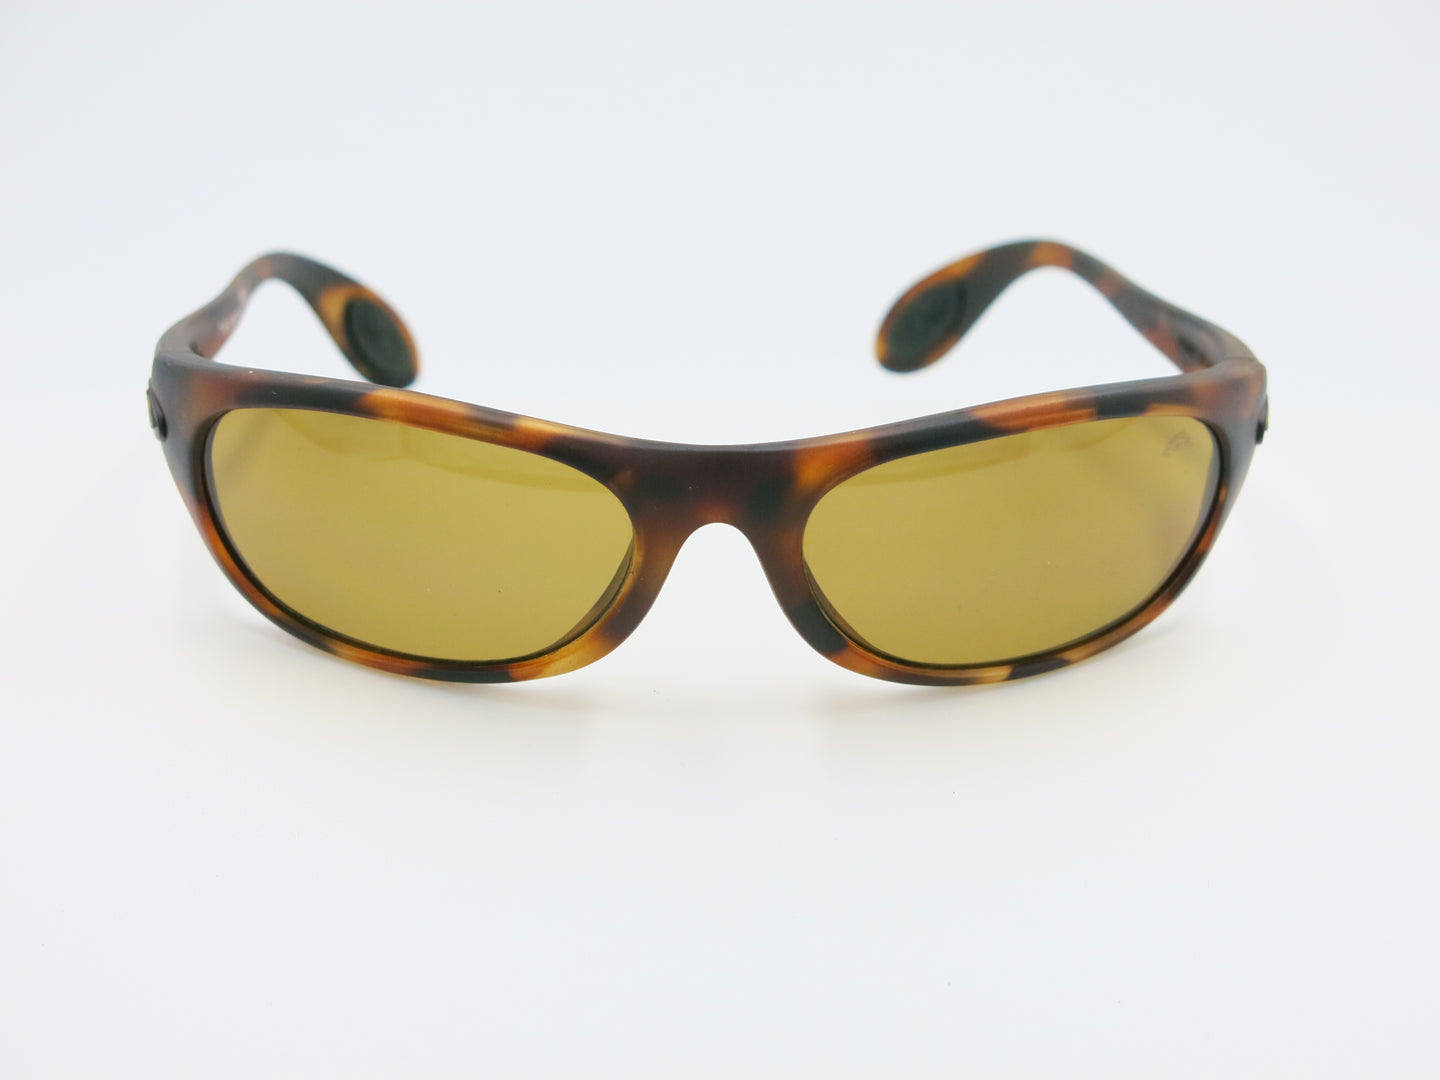 Killer Loop Sunglasses - K 1107 | Sunglasses by Killer Loop | Friedman & Sons